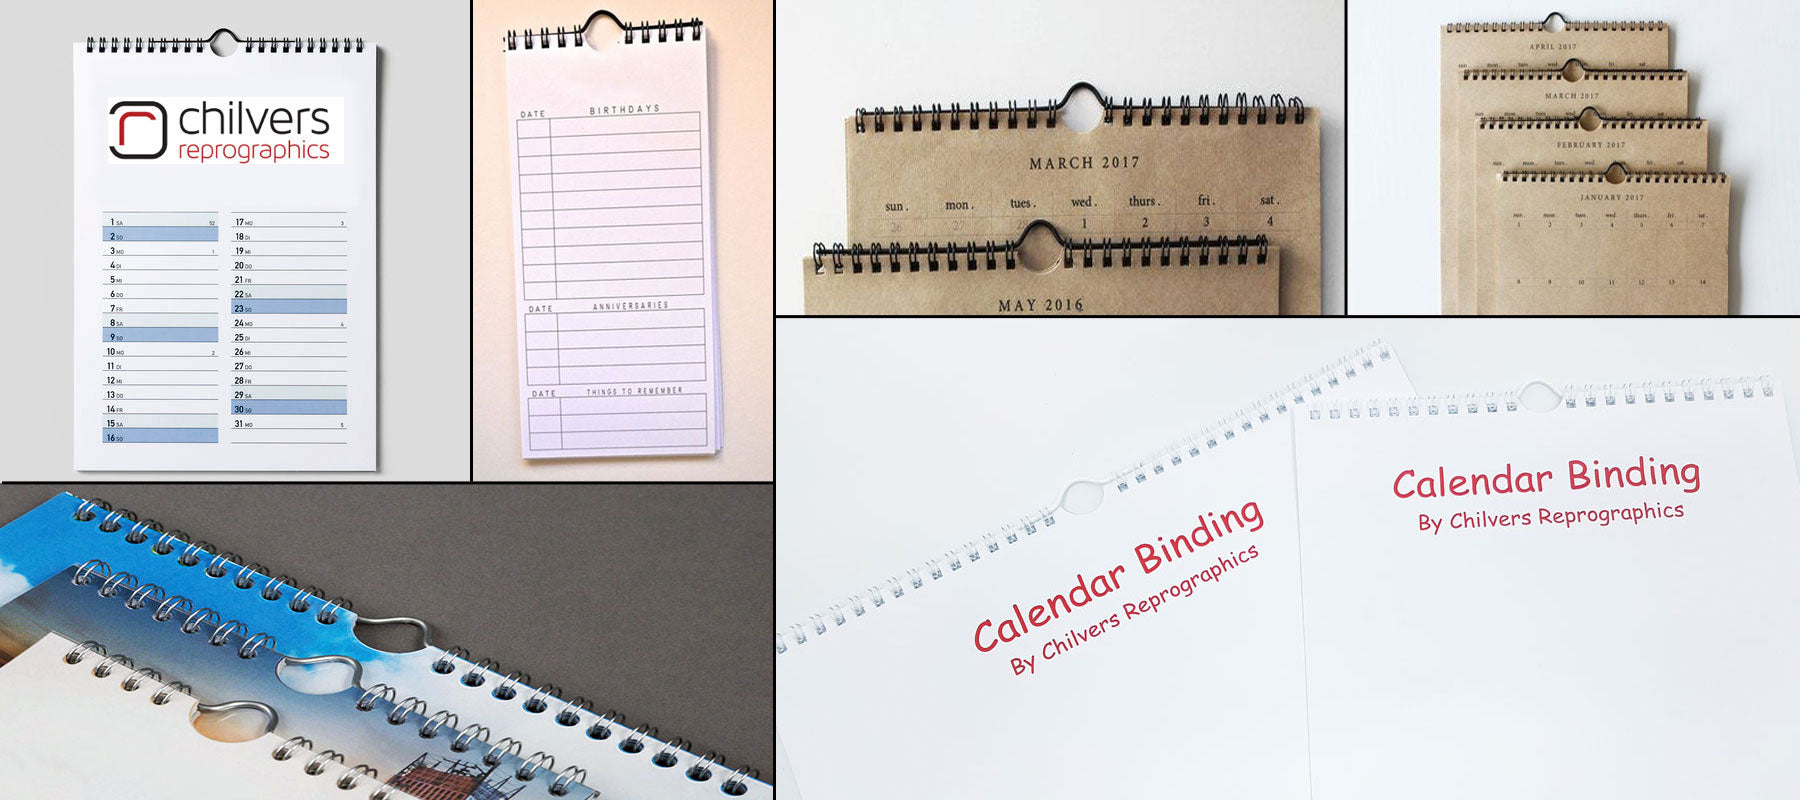 Calendar binding made easy.